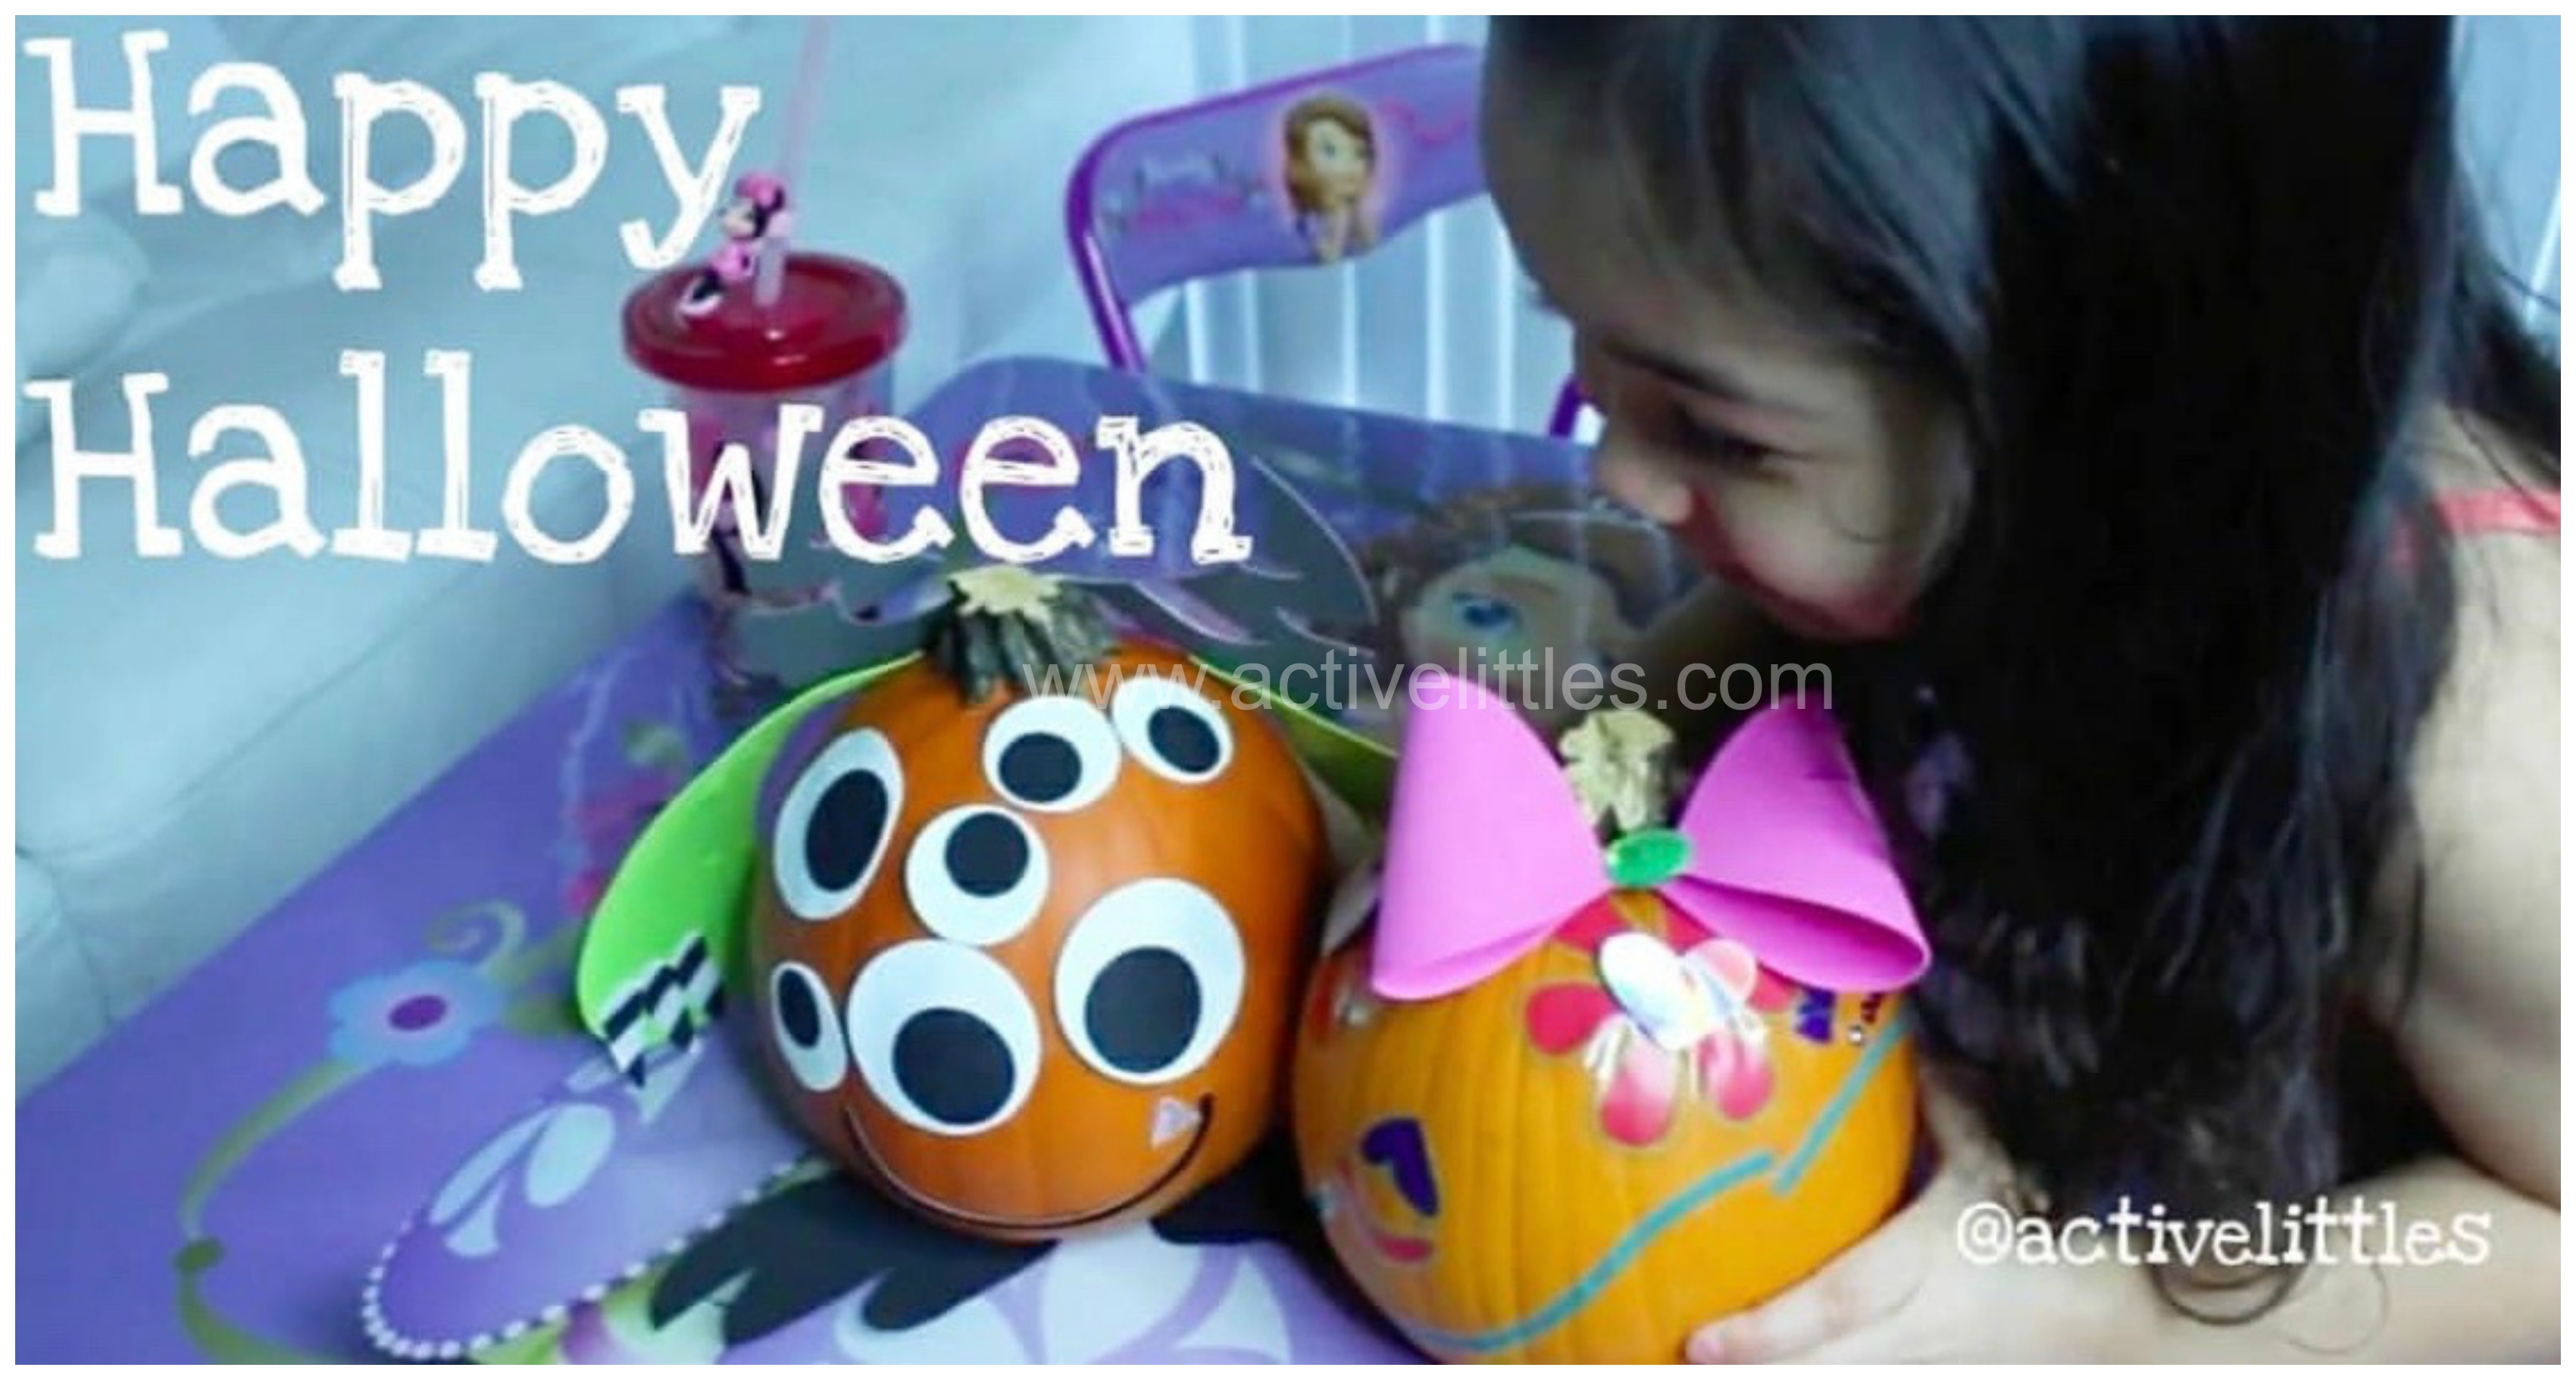 halloween decorate a pumpkin ideas for kids